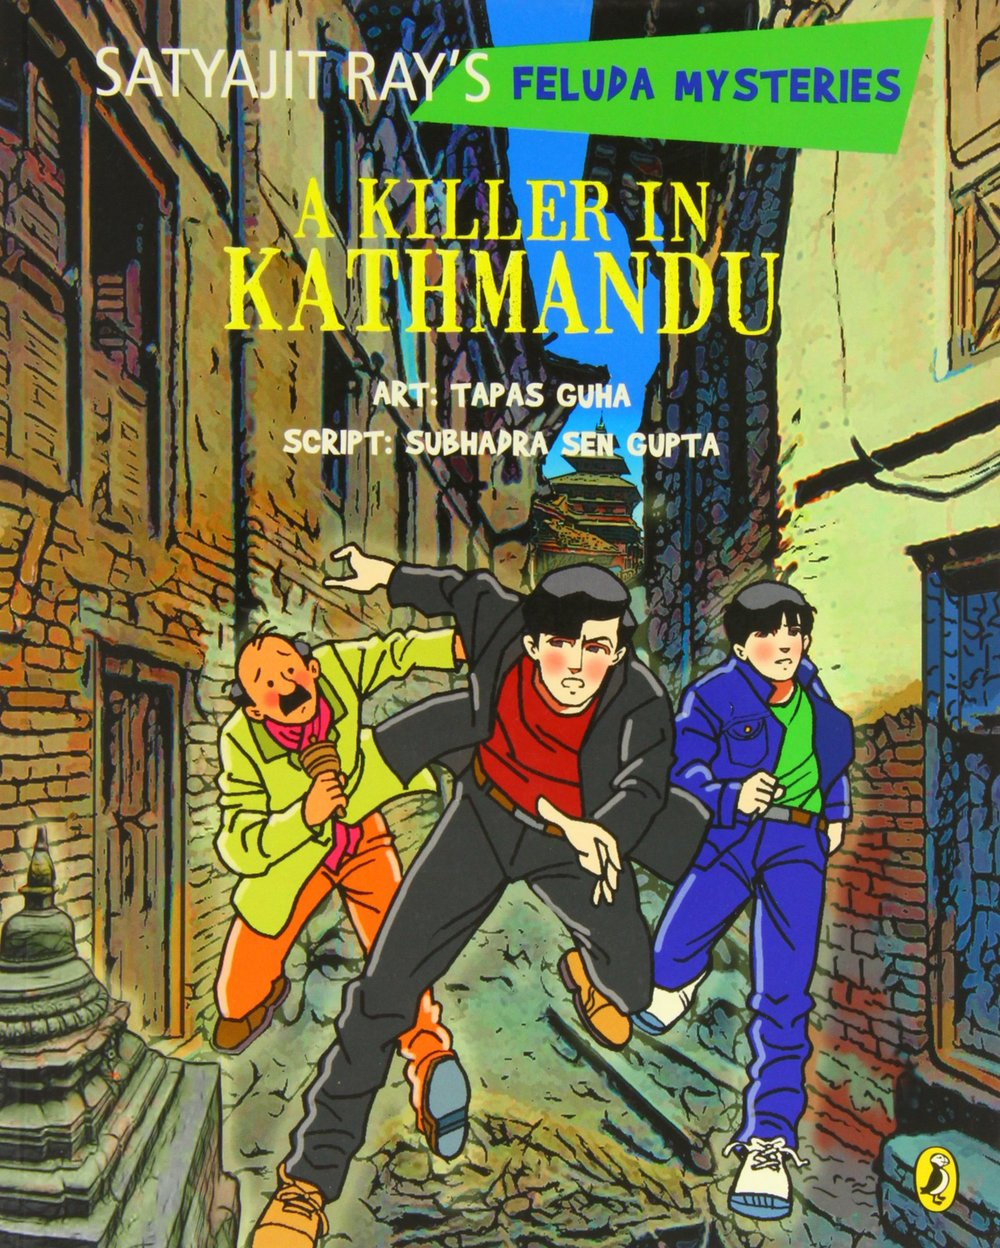 An Herge style Feluda adventure for young readers.